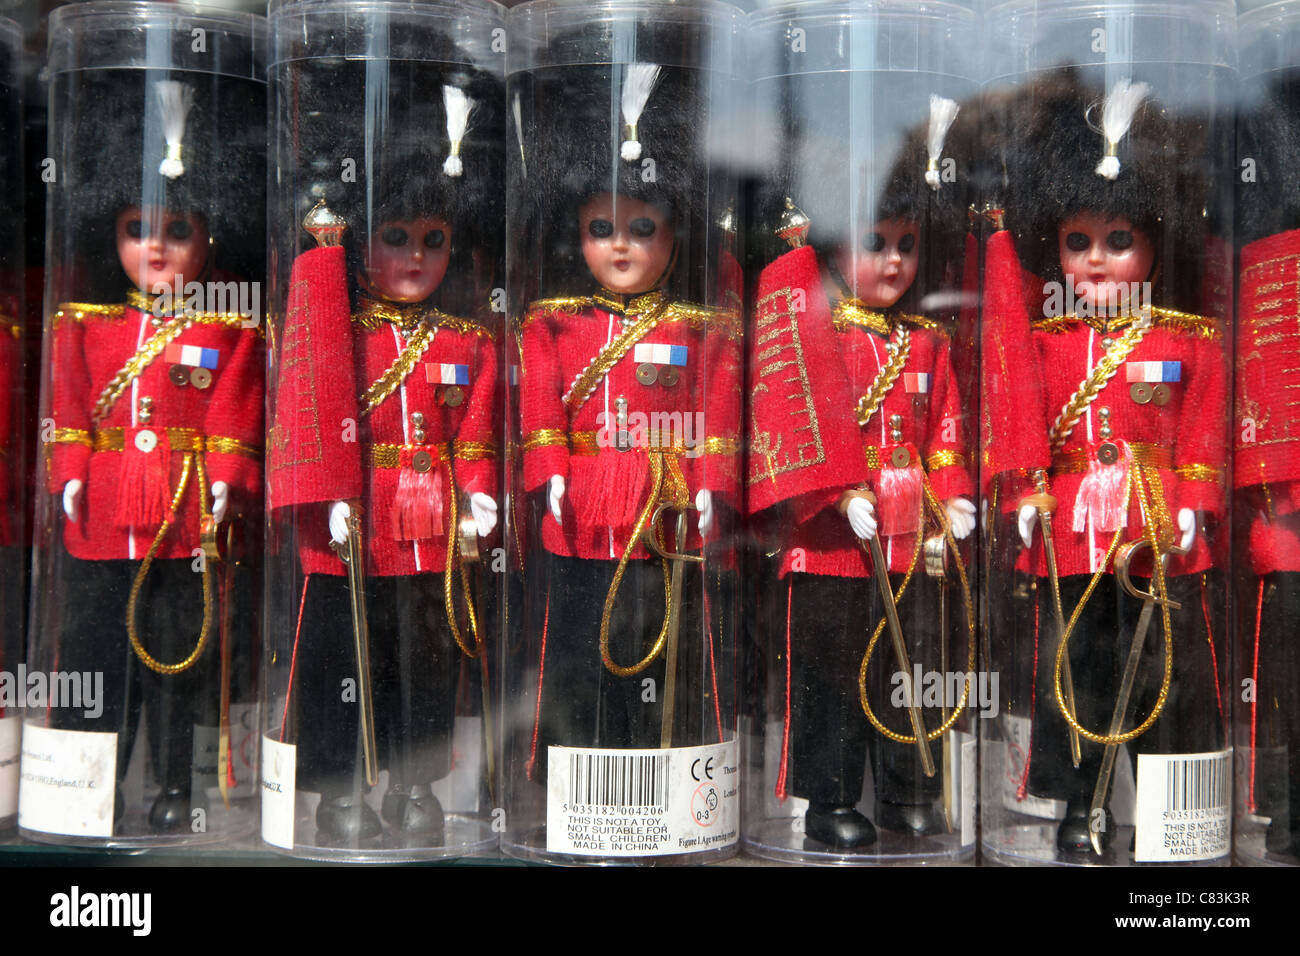 Miniature Beefeaters for sale in a tourist shop - Stock Image